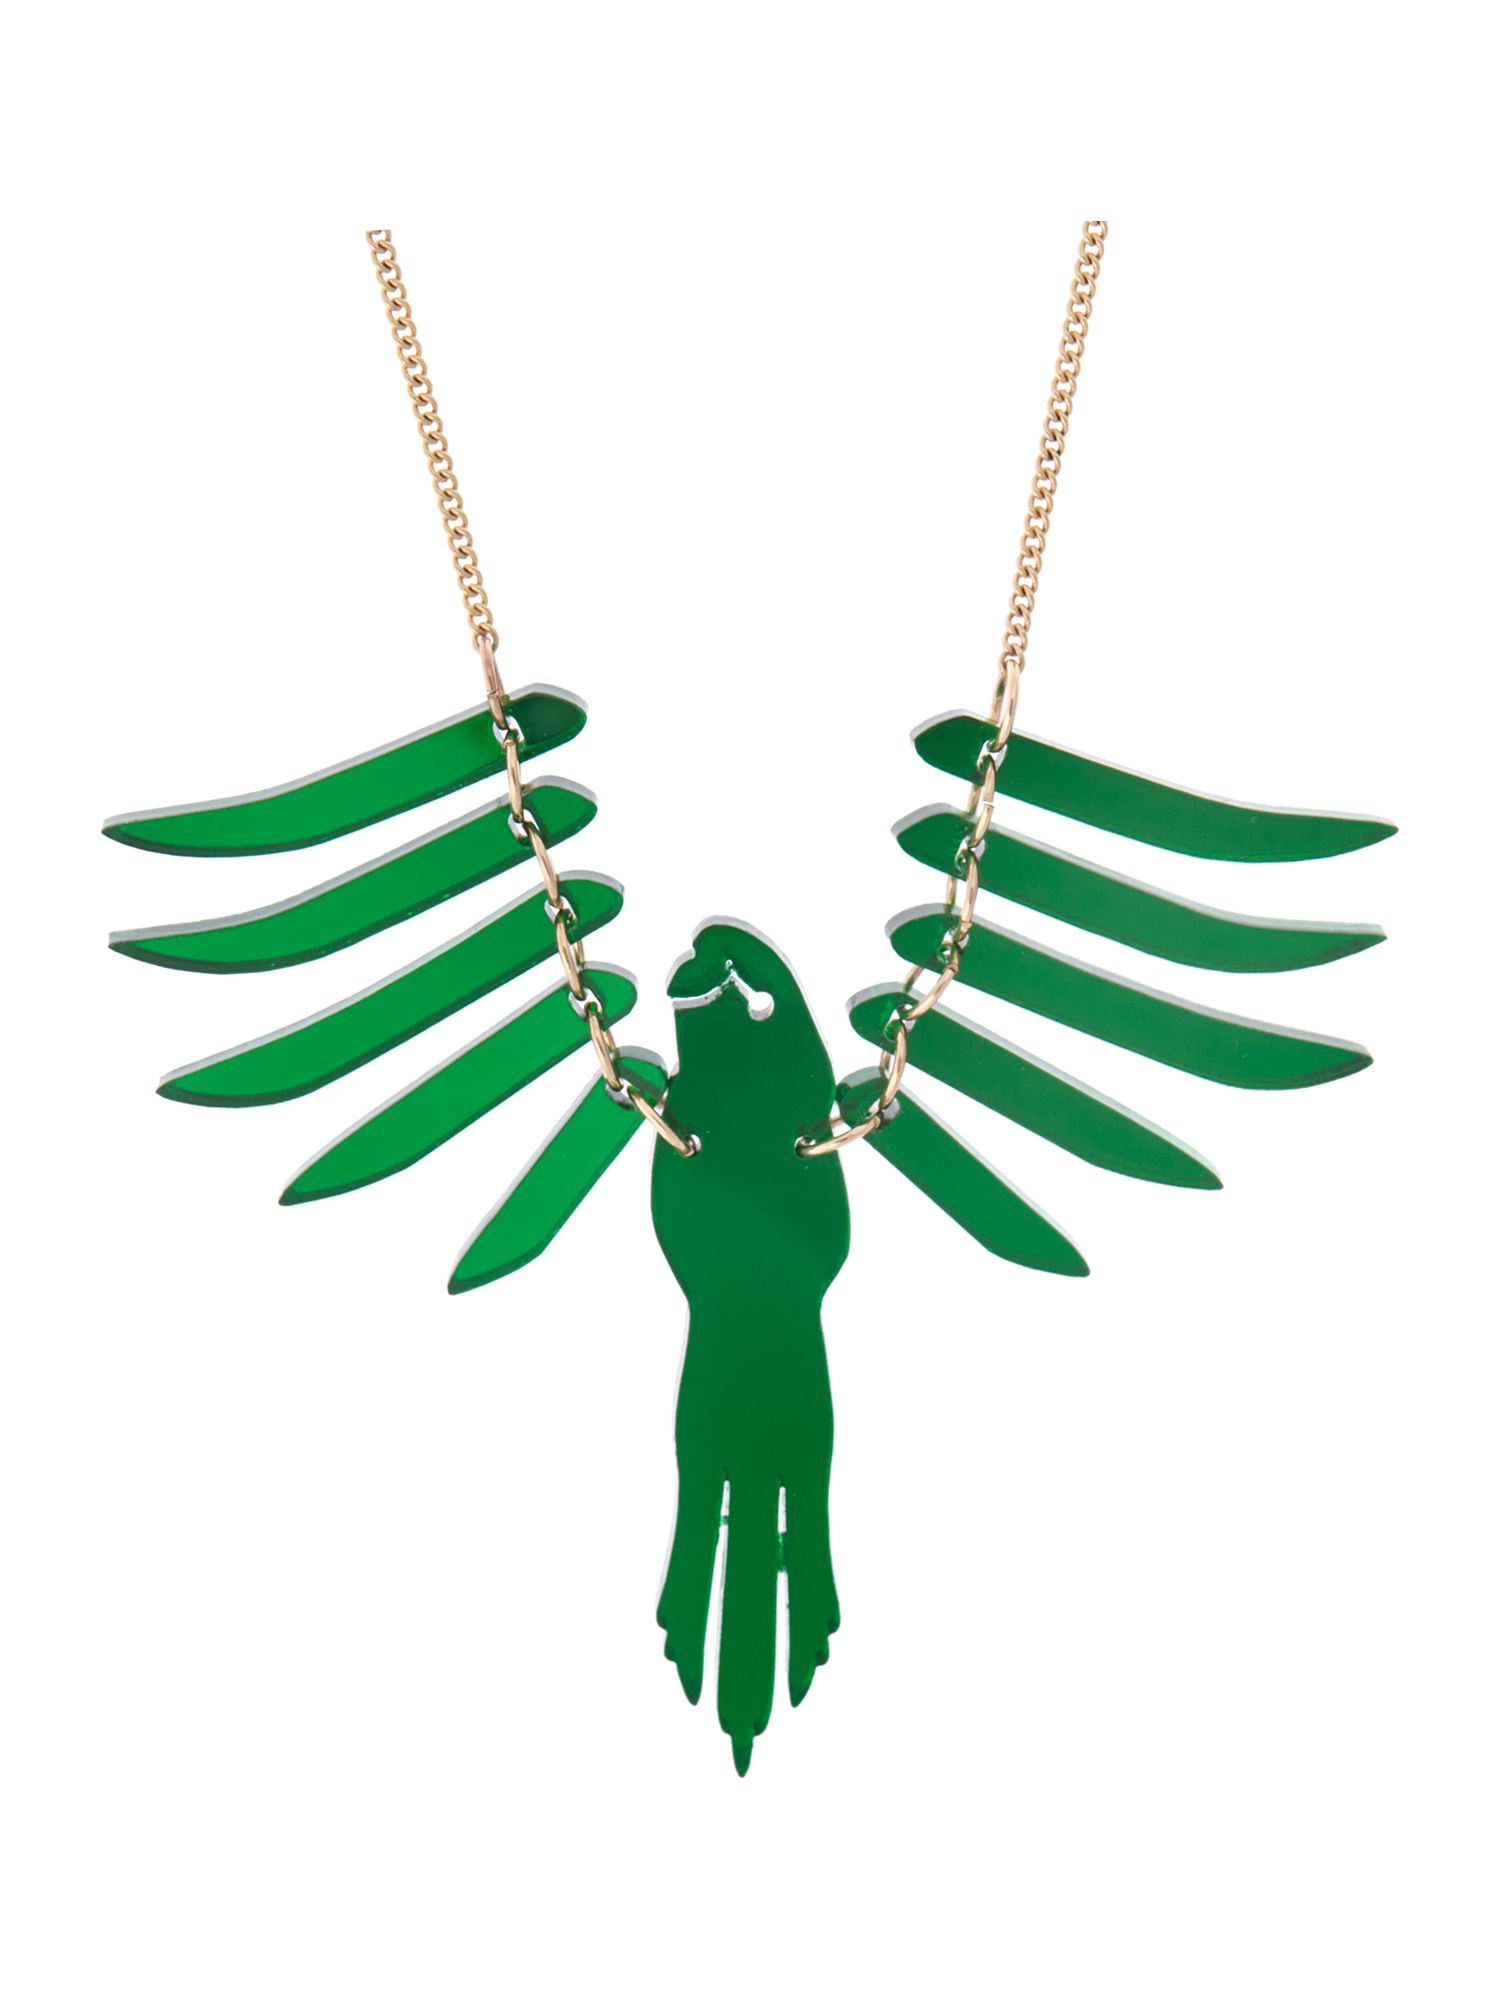 Parakeet necklace - emerald mirror